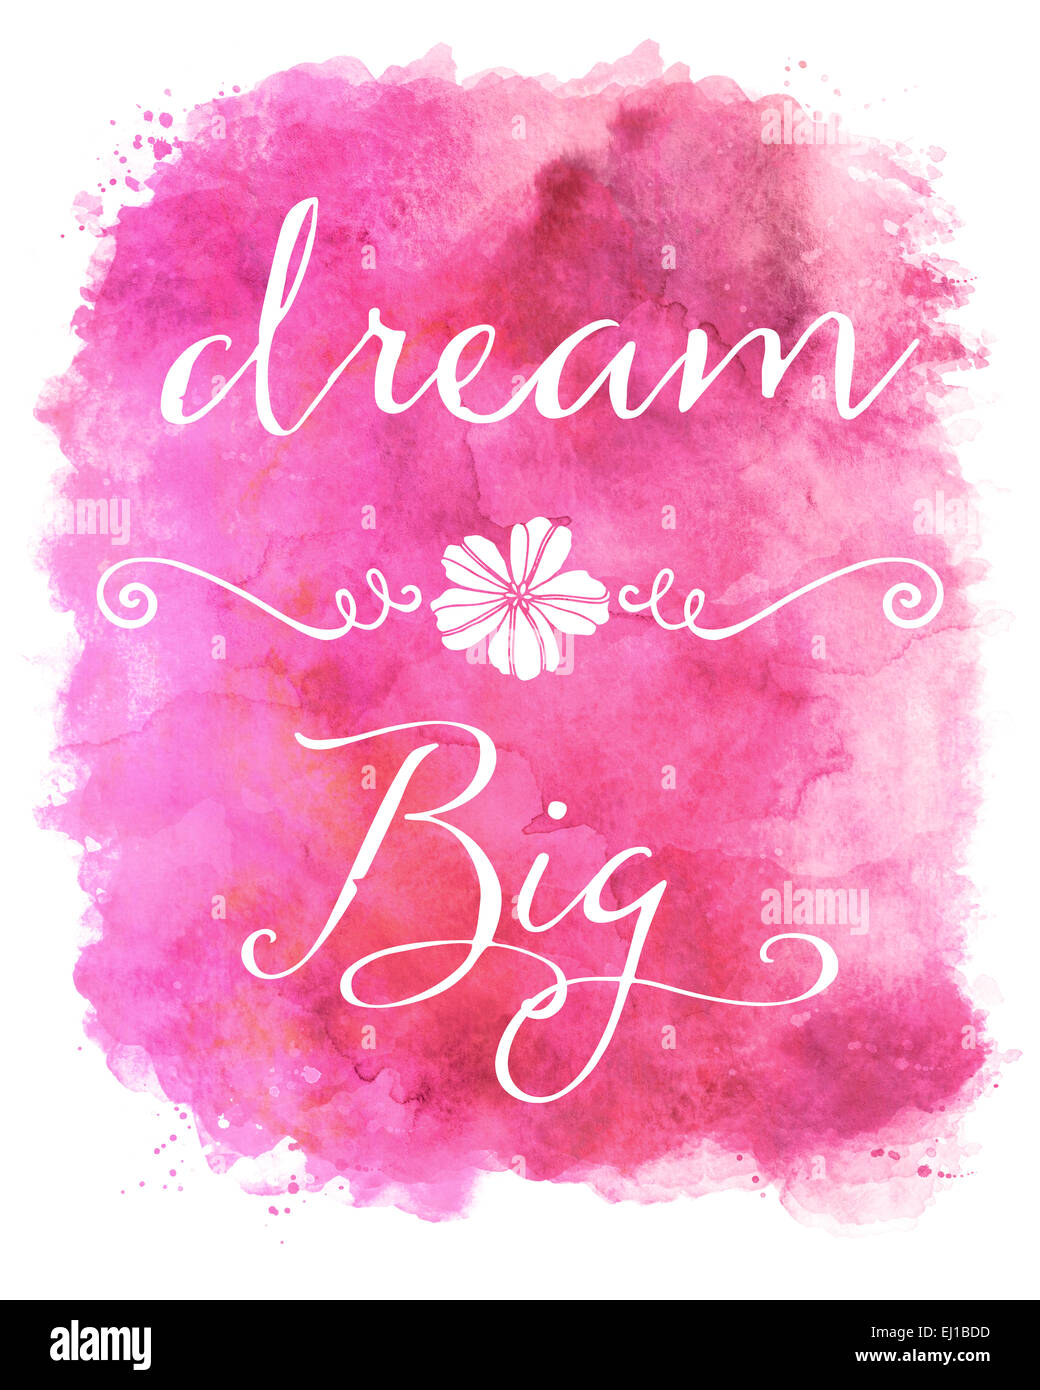 Motivational Quotes Wallpaper For Mobile Dream Big Pink Watercolor Inspirational Quote Stock Photo